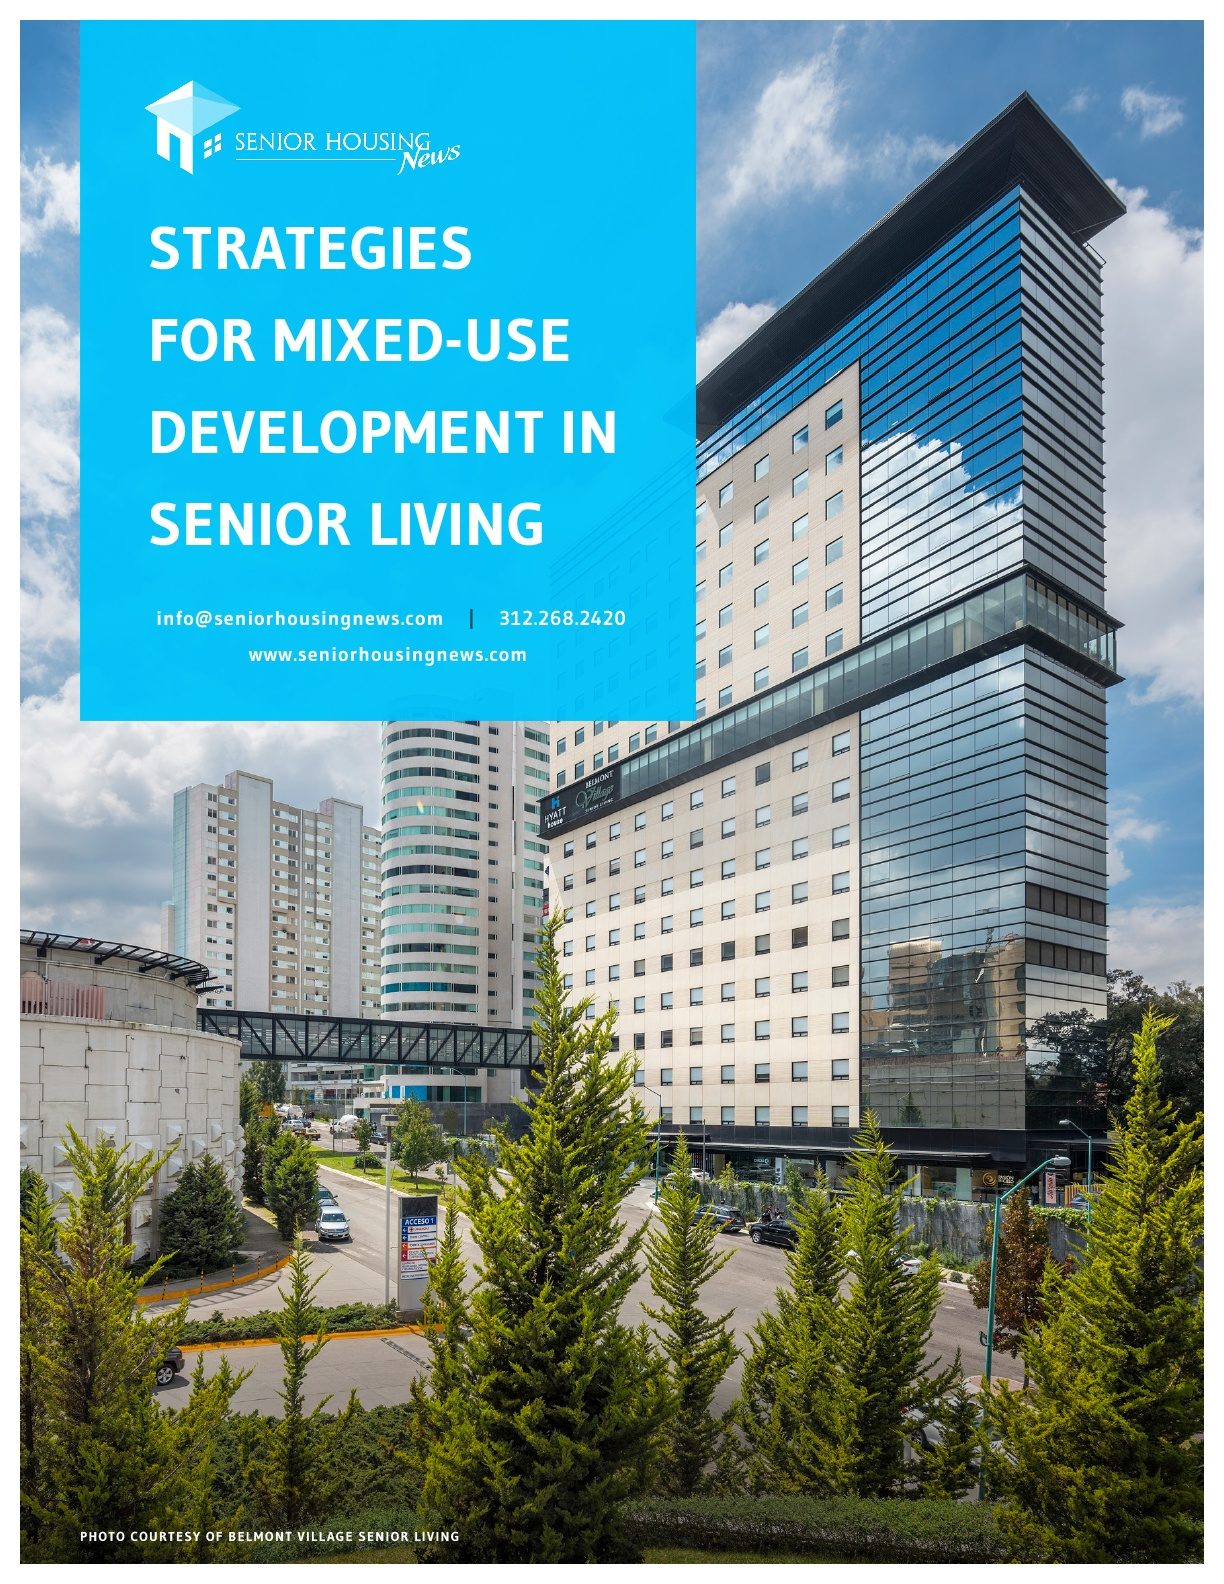 Strategies for Mixed-Use Development in Senior Living